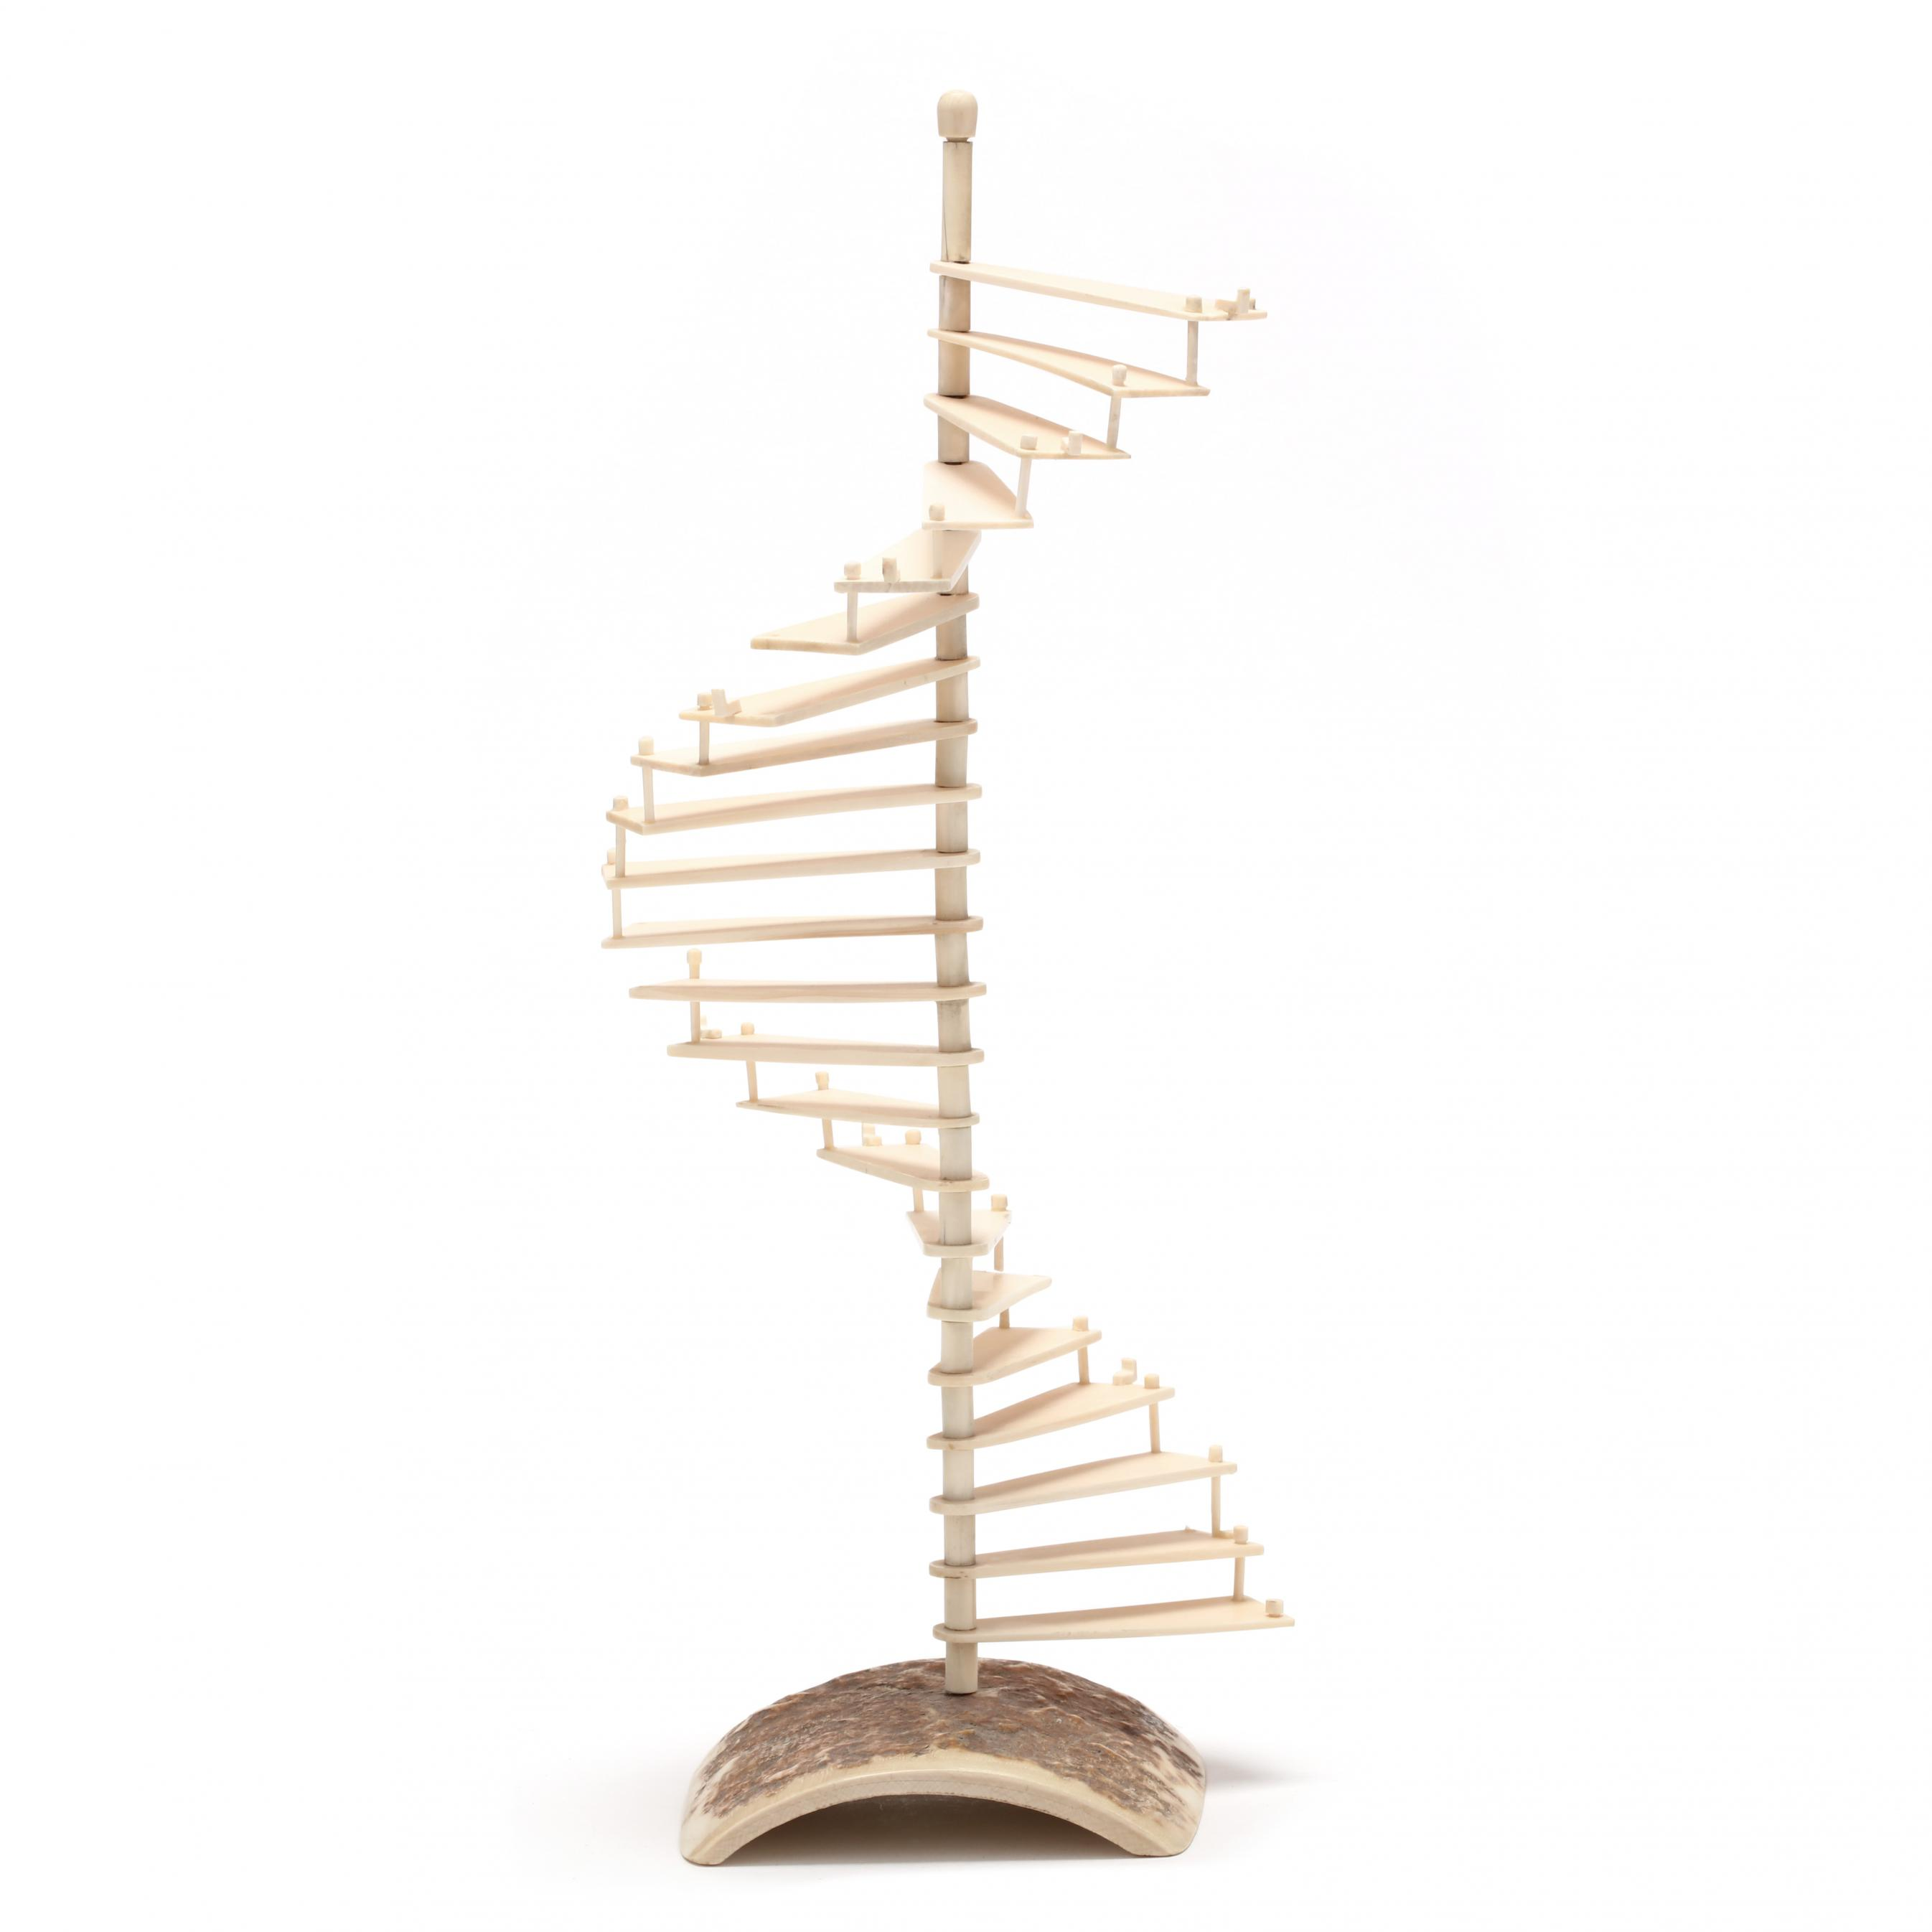 carved-mammoth-ivory-spiral-staircase